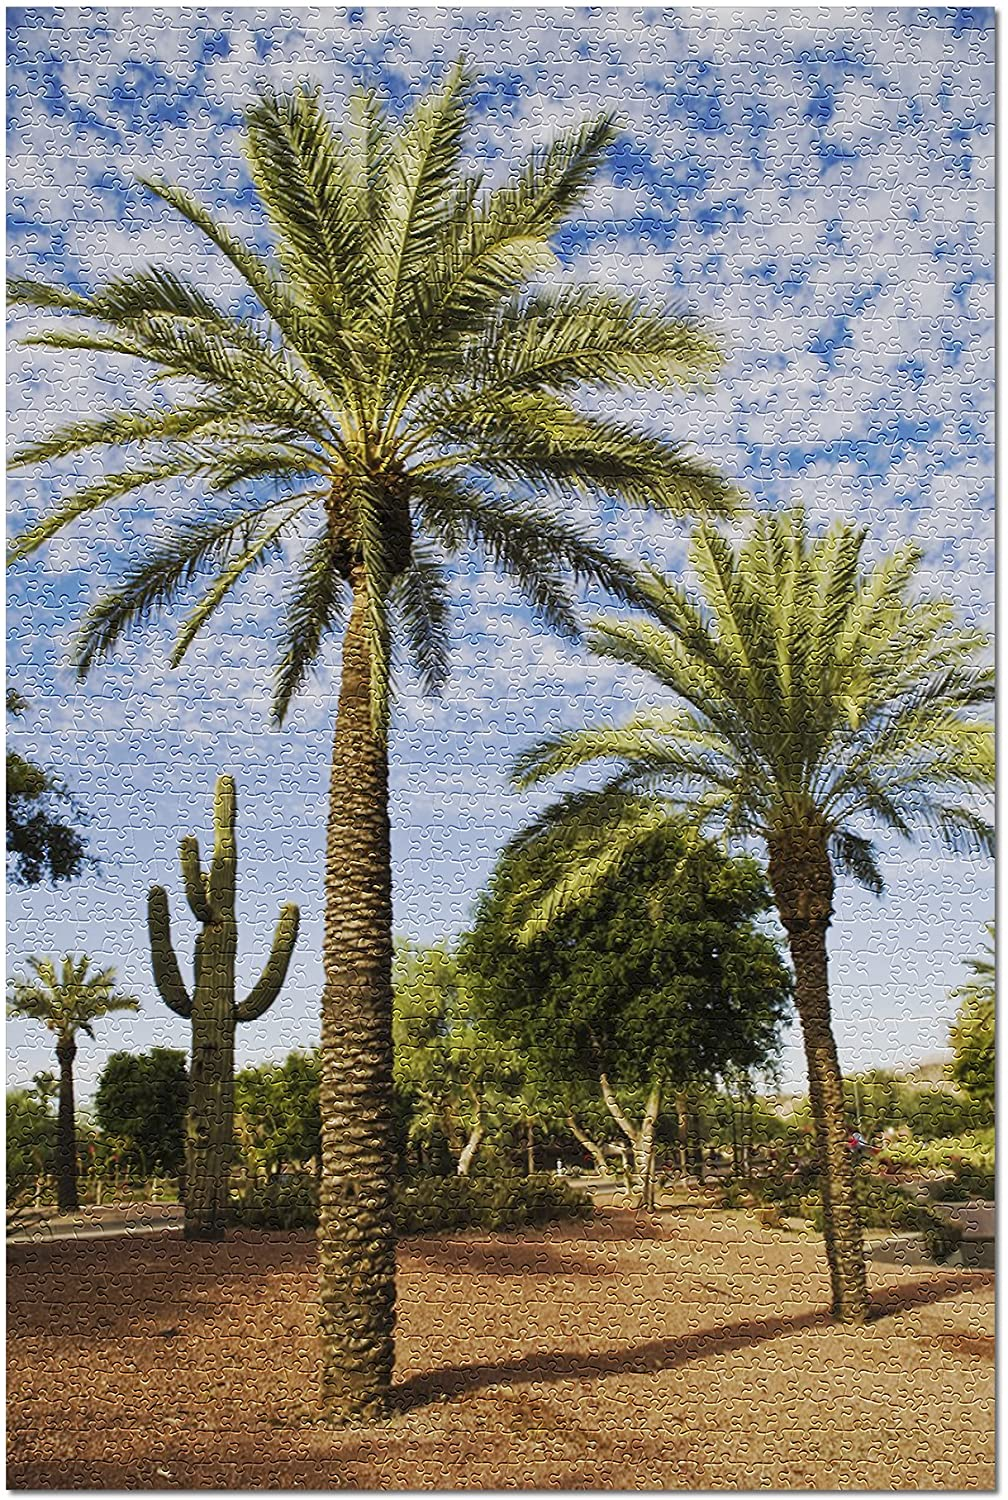 Palm Trees and Cactus (Premium 1000 Piece Jigsaw Puzzle for Adults, 19x27)